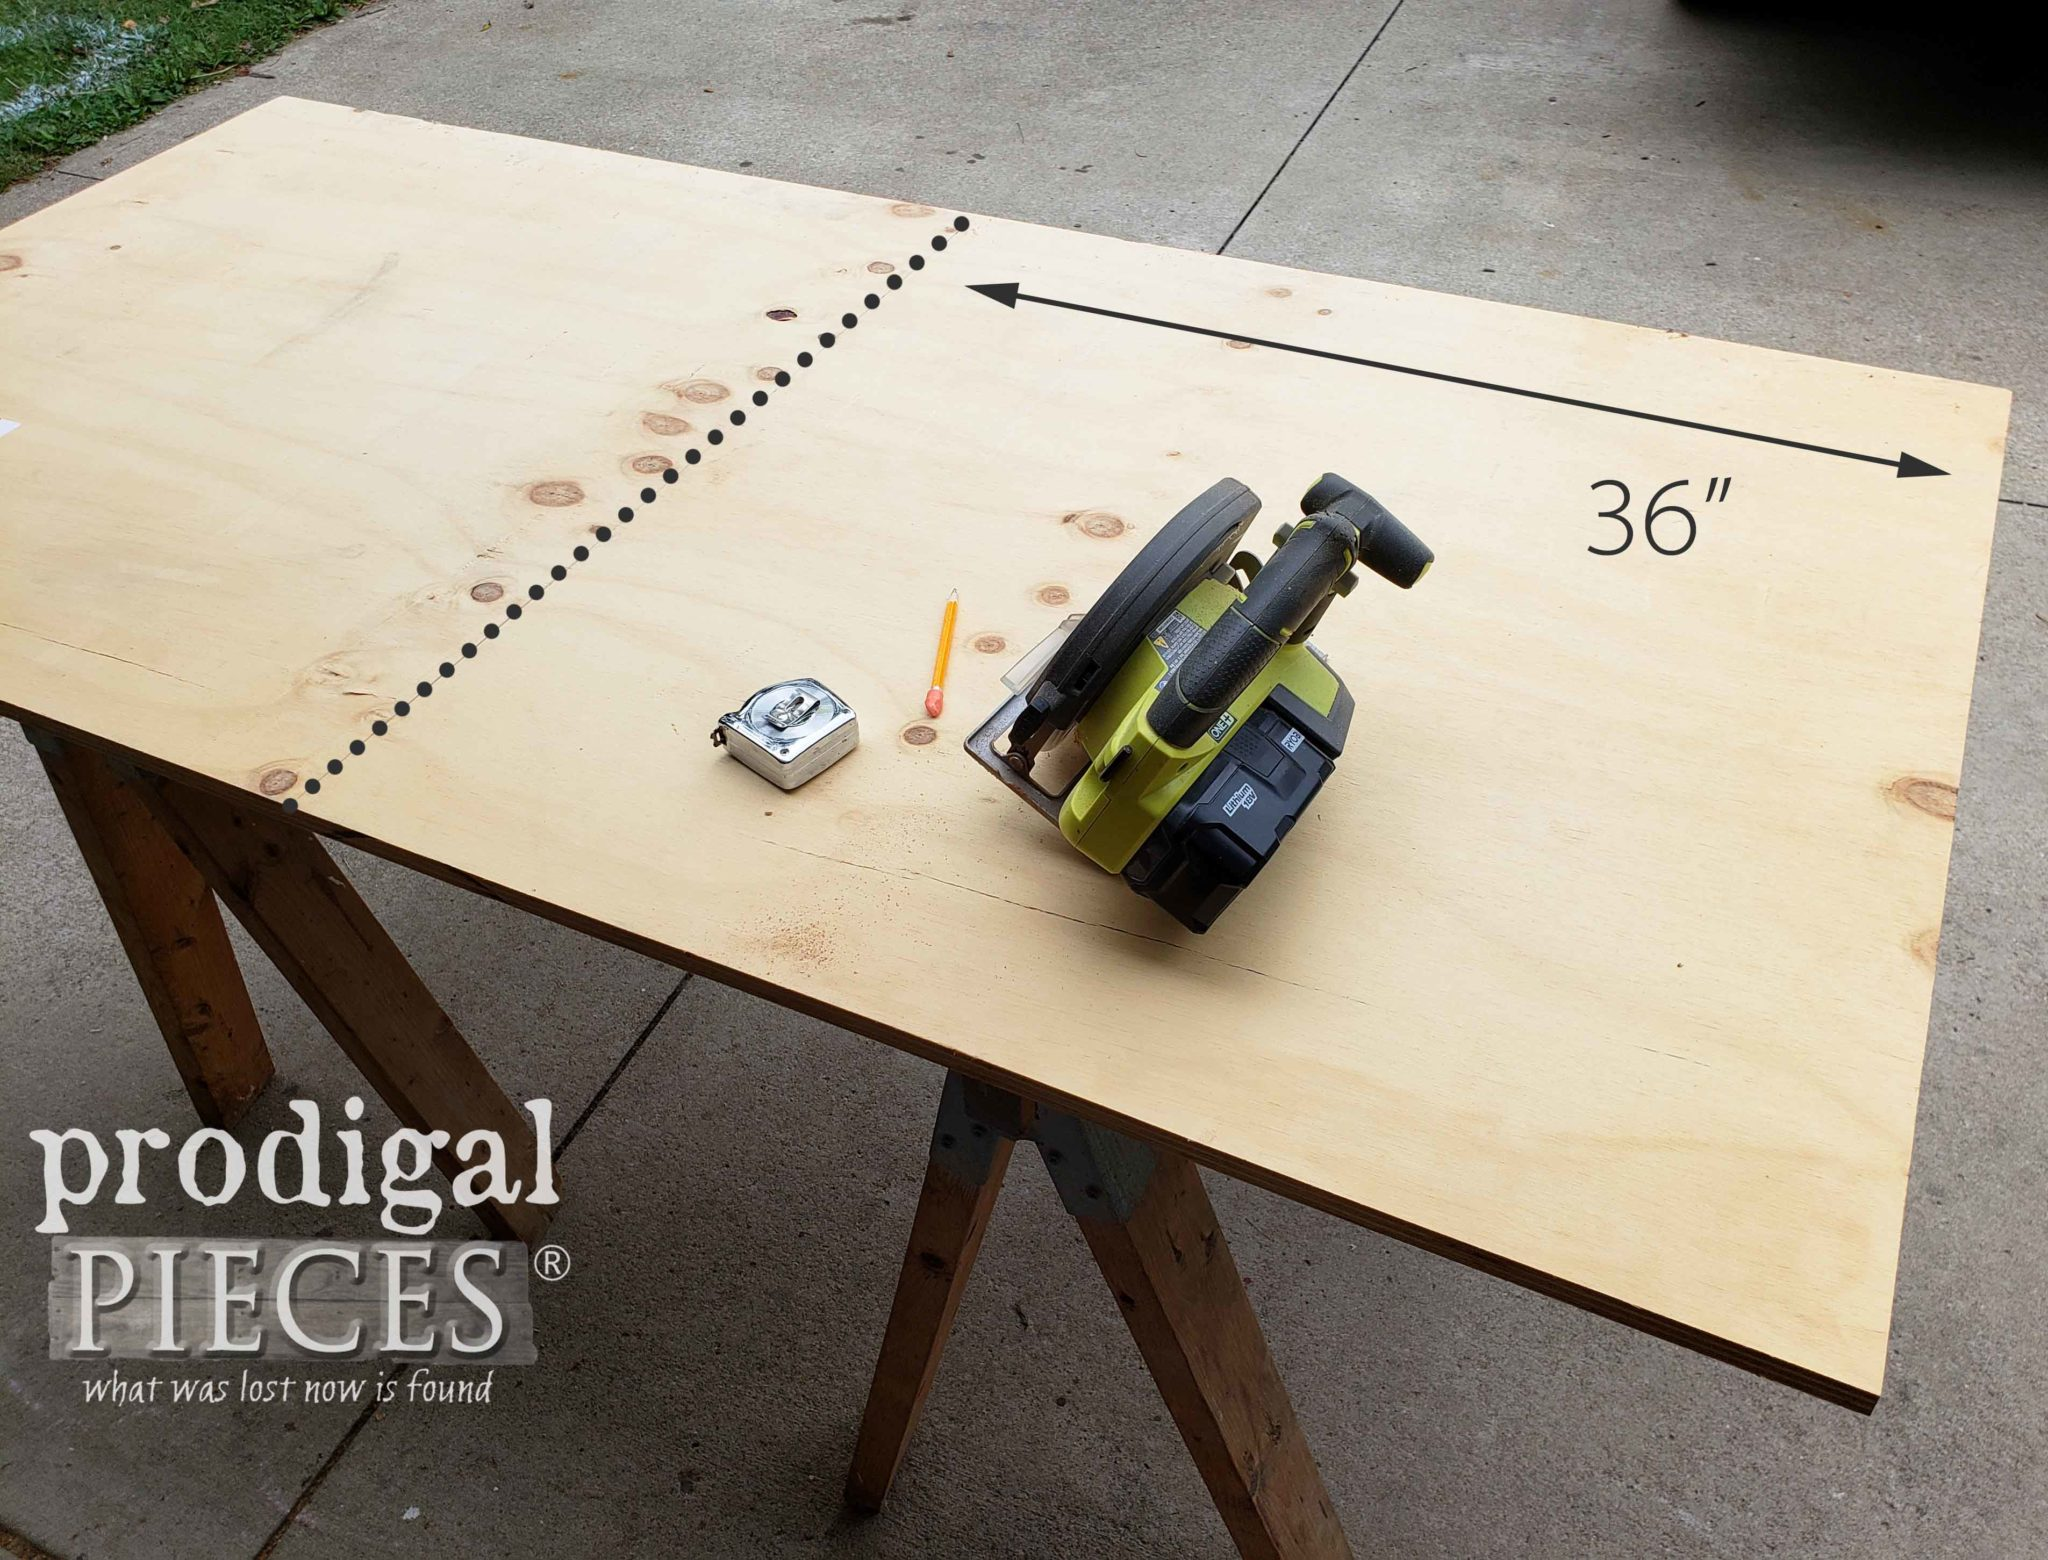 Cutting Plywood with Ryobi Circular Saw | prodigalpieces.com